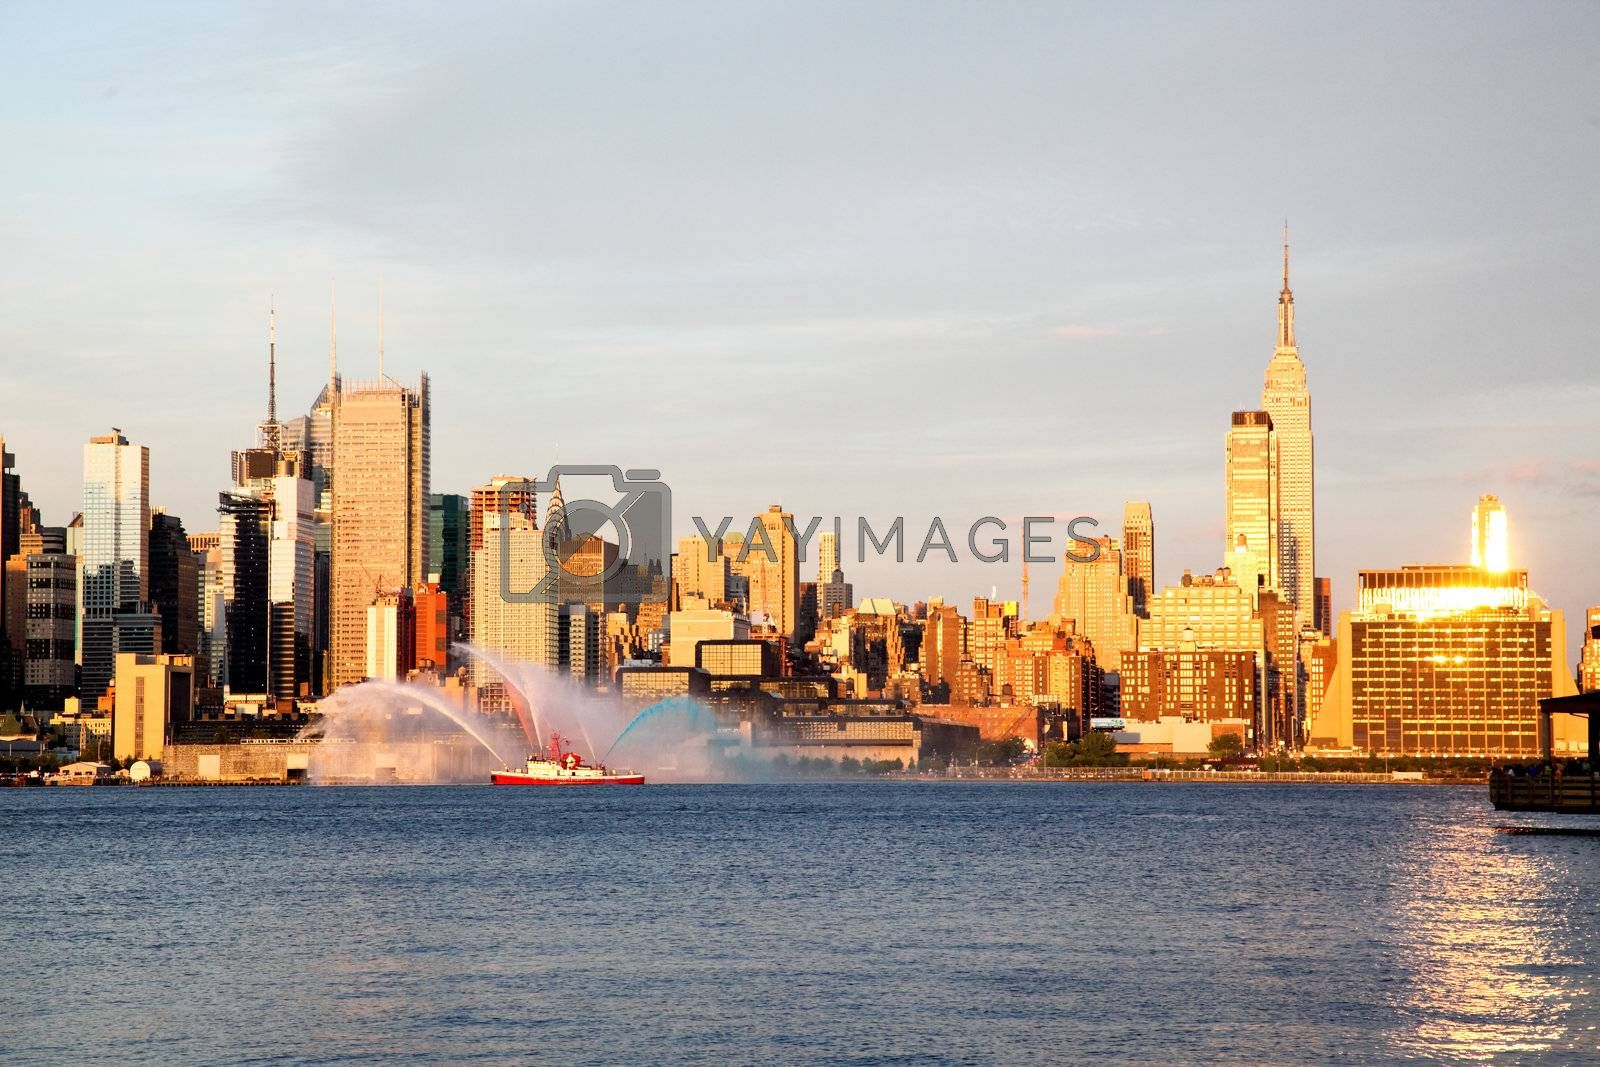 NEW YORK CITY - JULY 4, 2009: Fireboat water spree prior to Mary's 4th of July fireworks